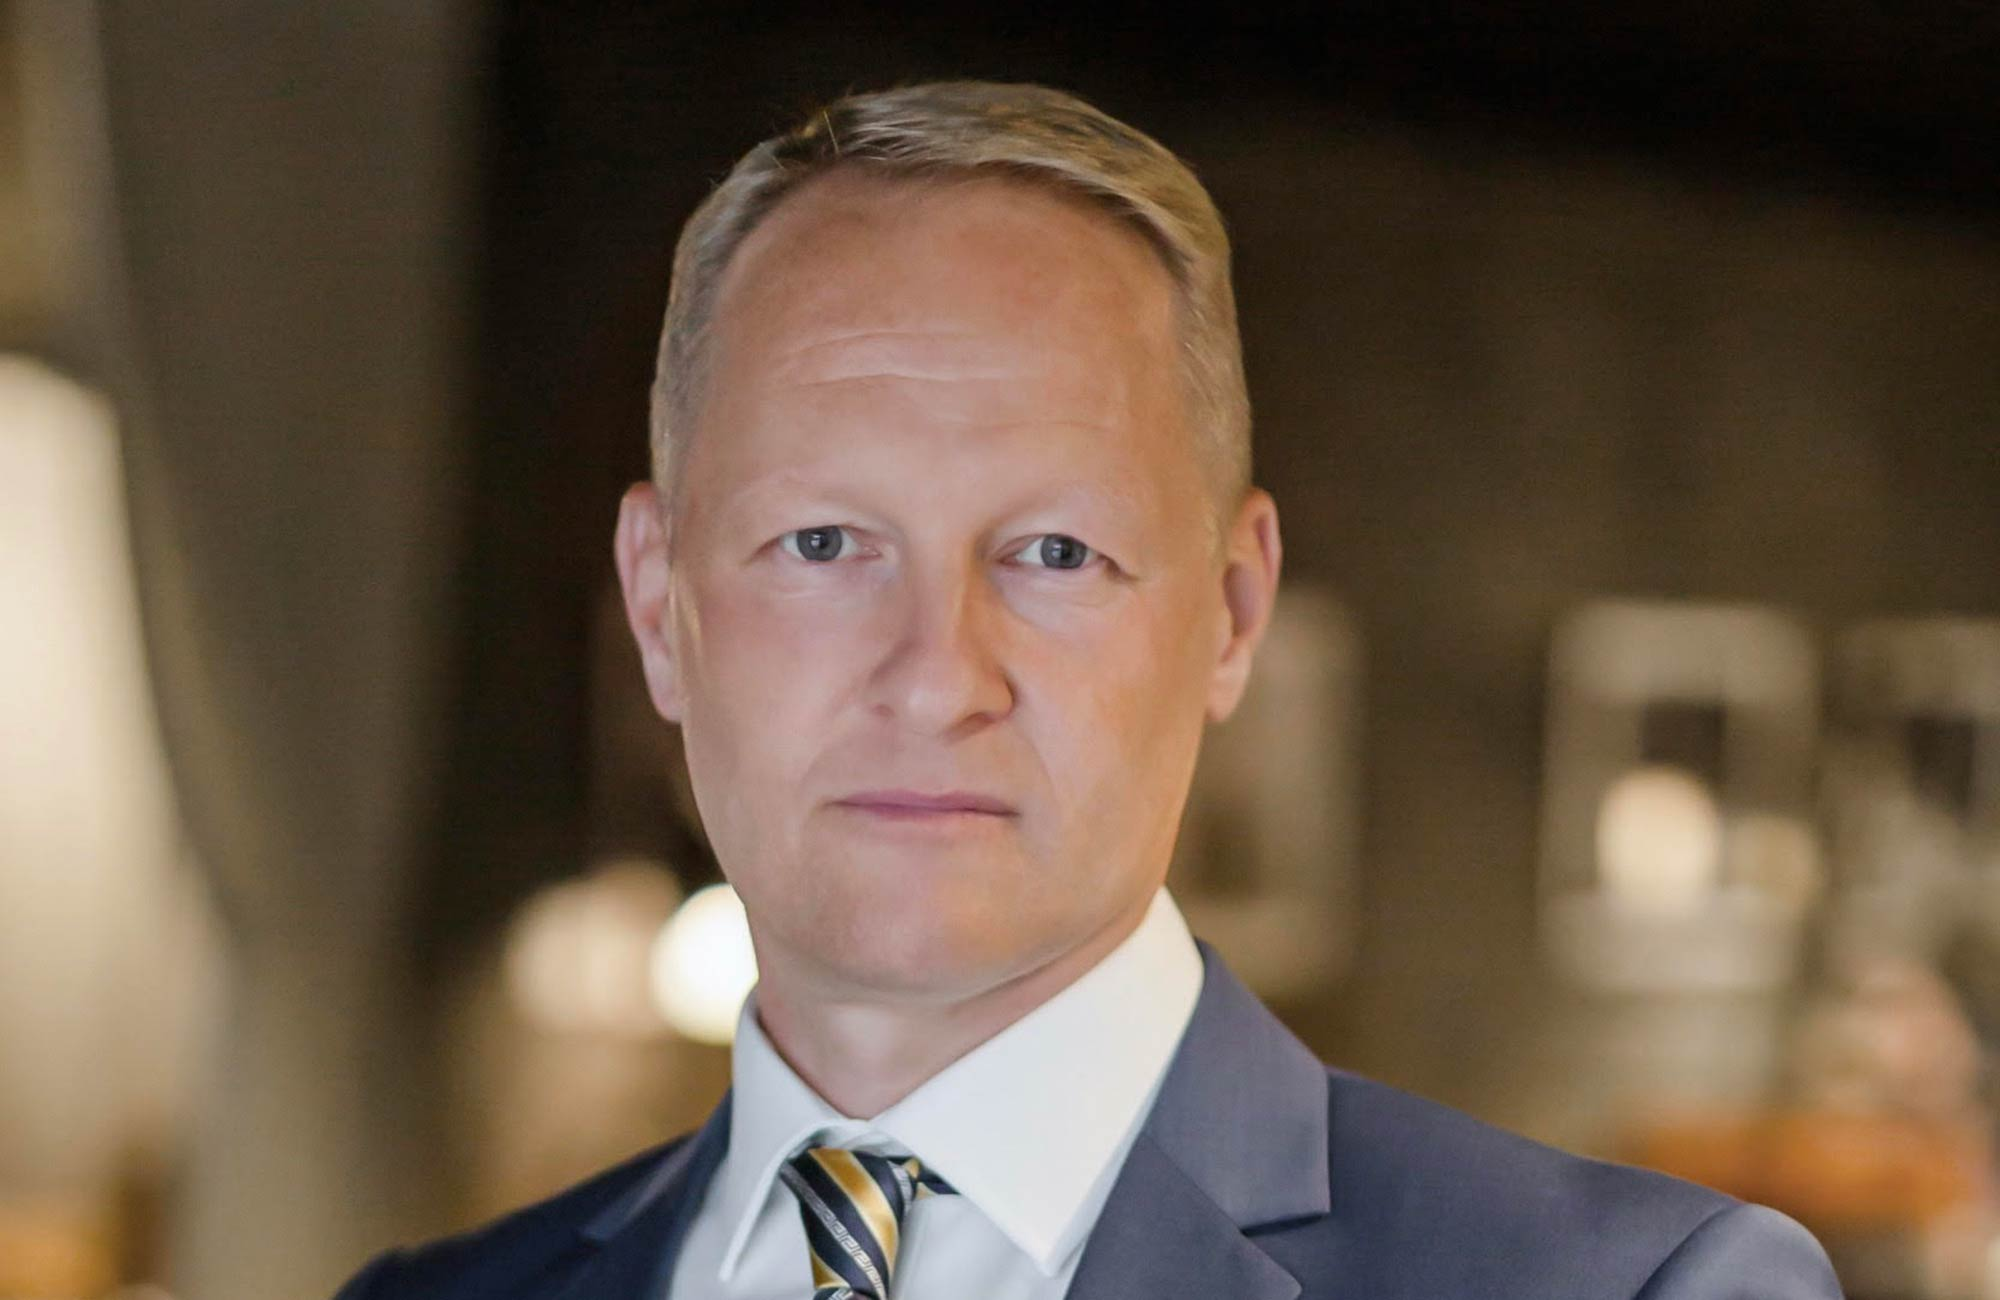 Ulf Gustavsson appointed as new Secretary General.